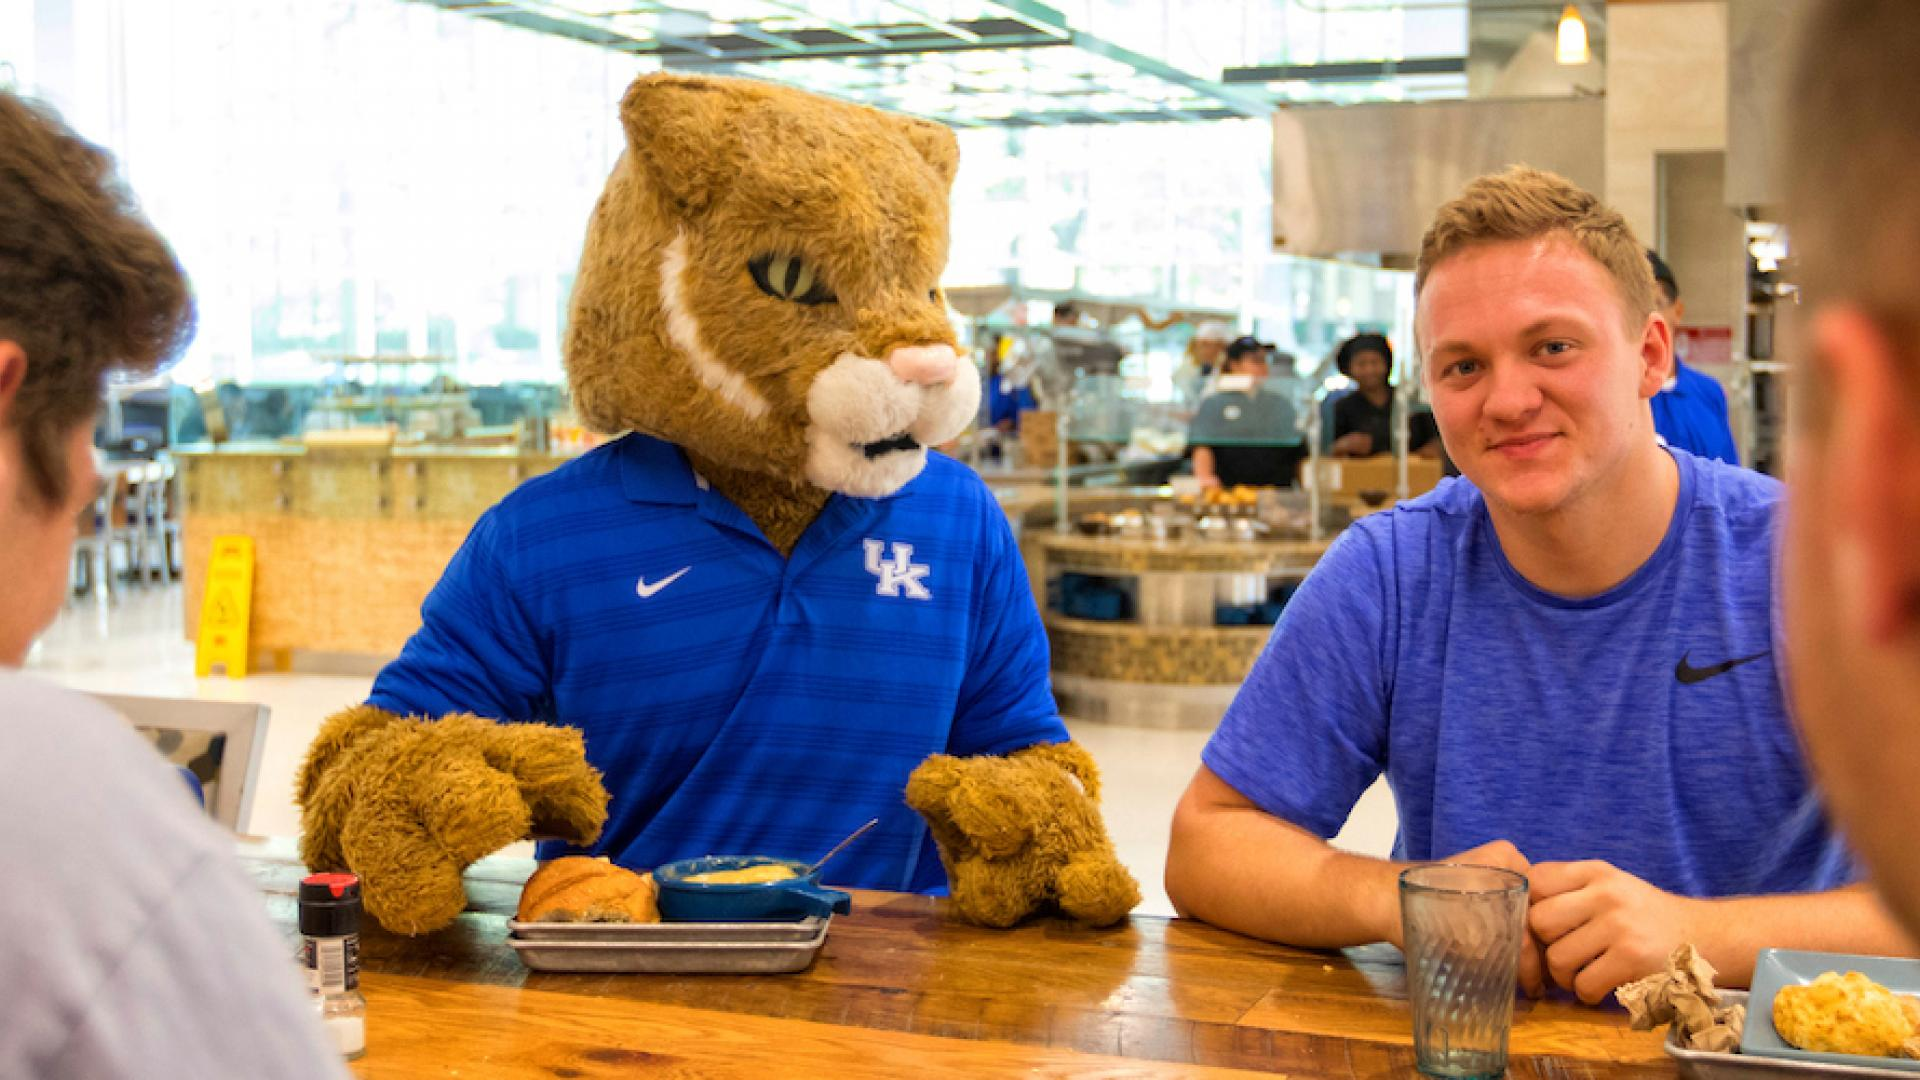 Students Enjoying the Comforts of UK Dining With the UK Wildcat Mascot